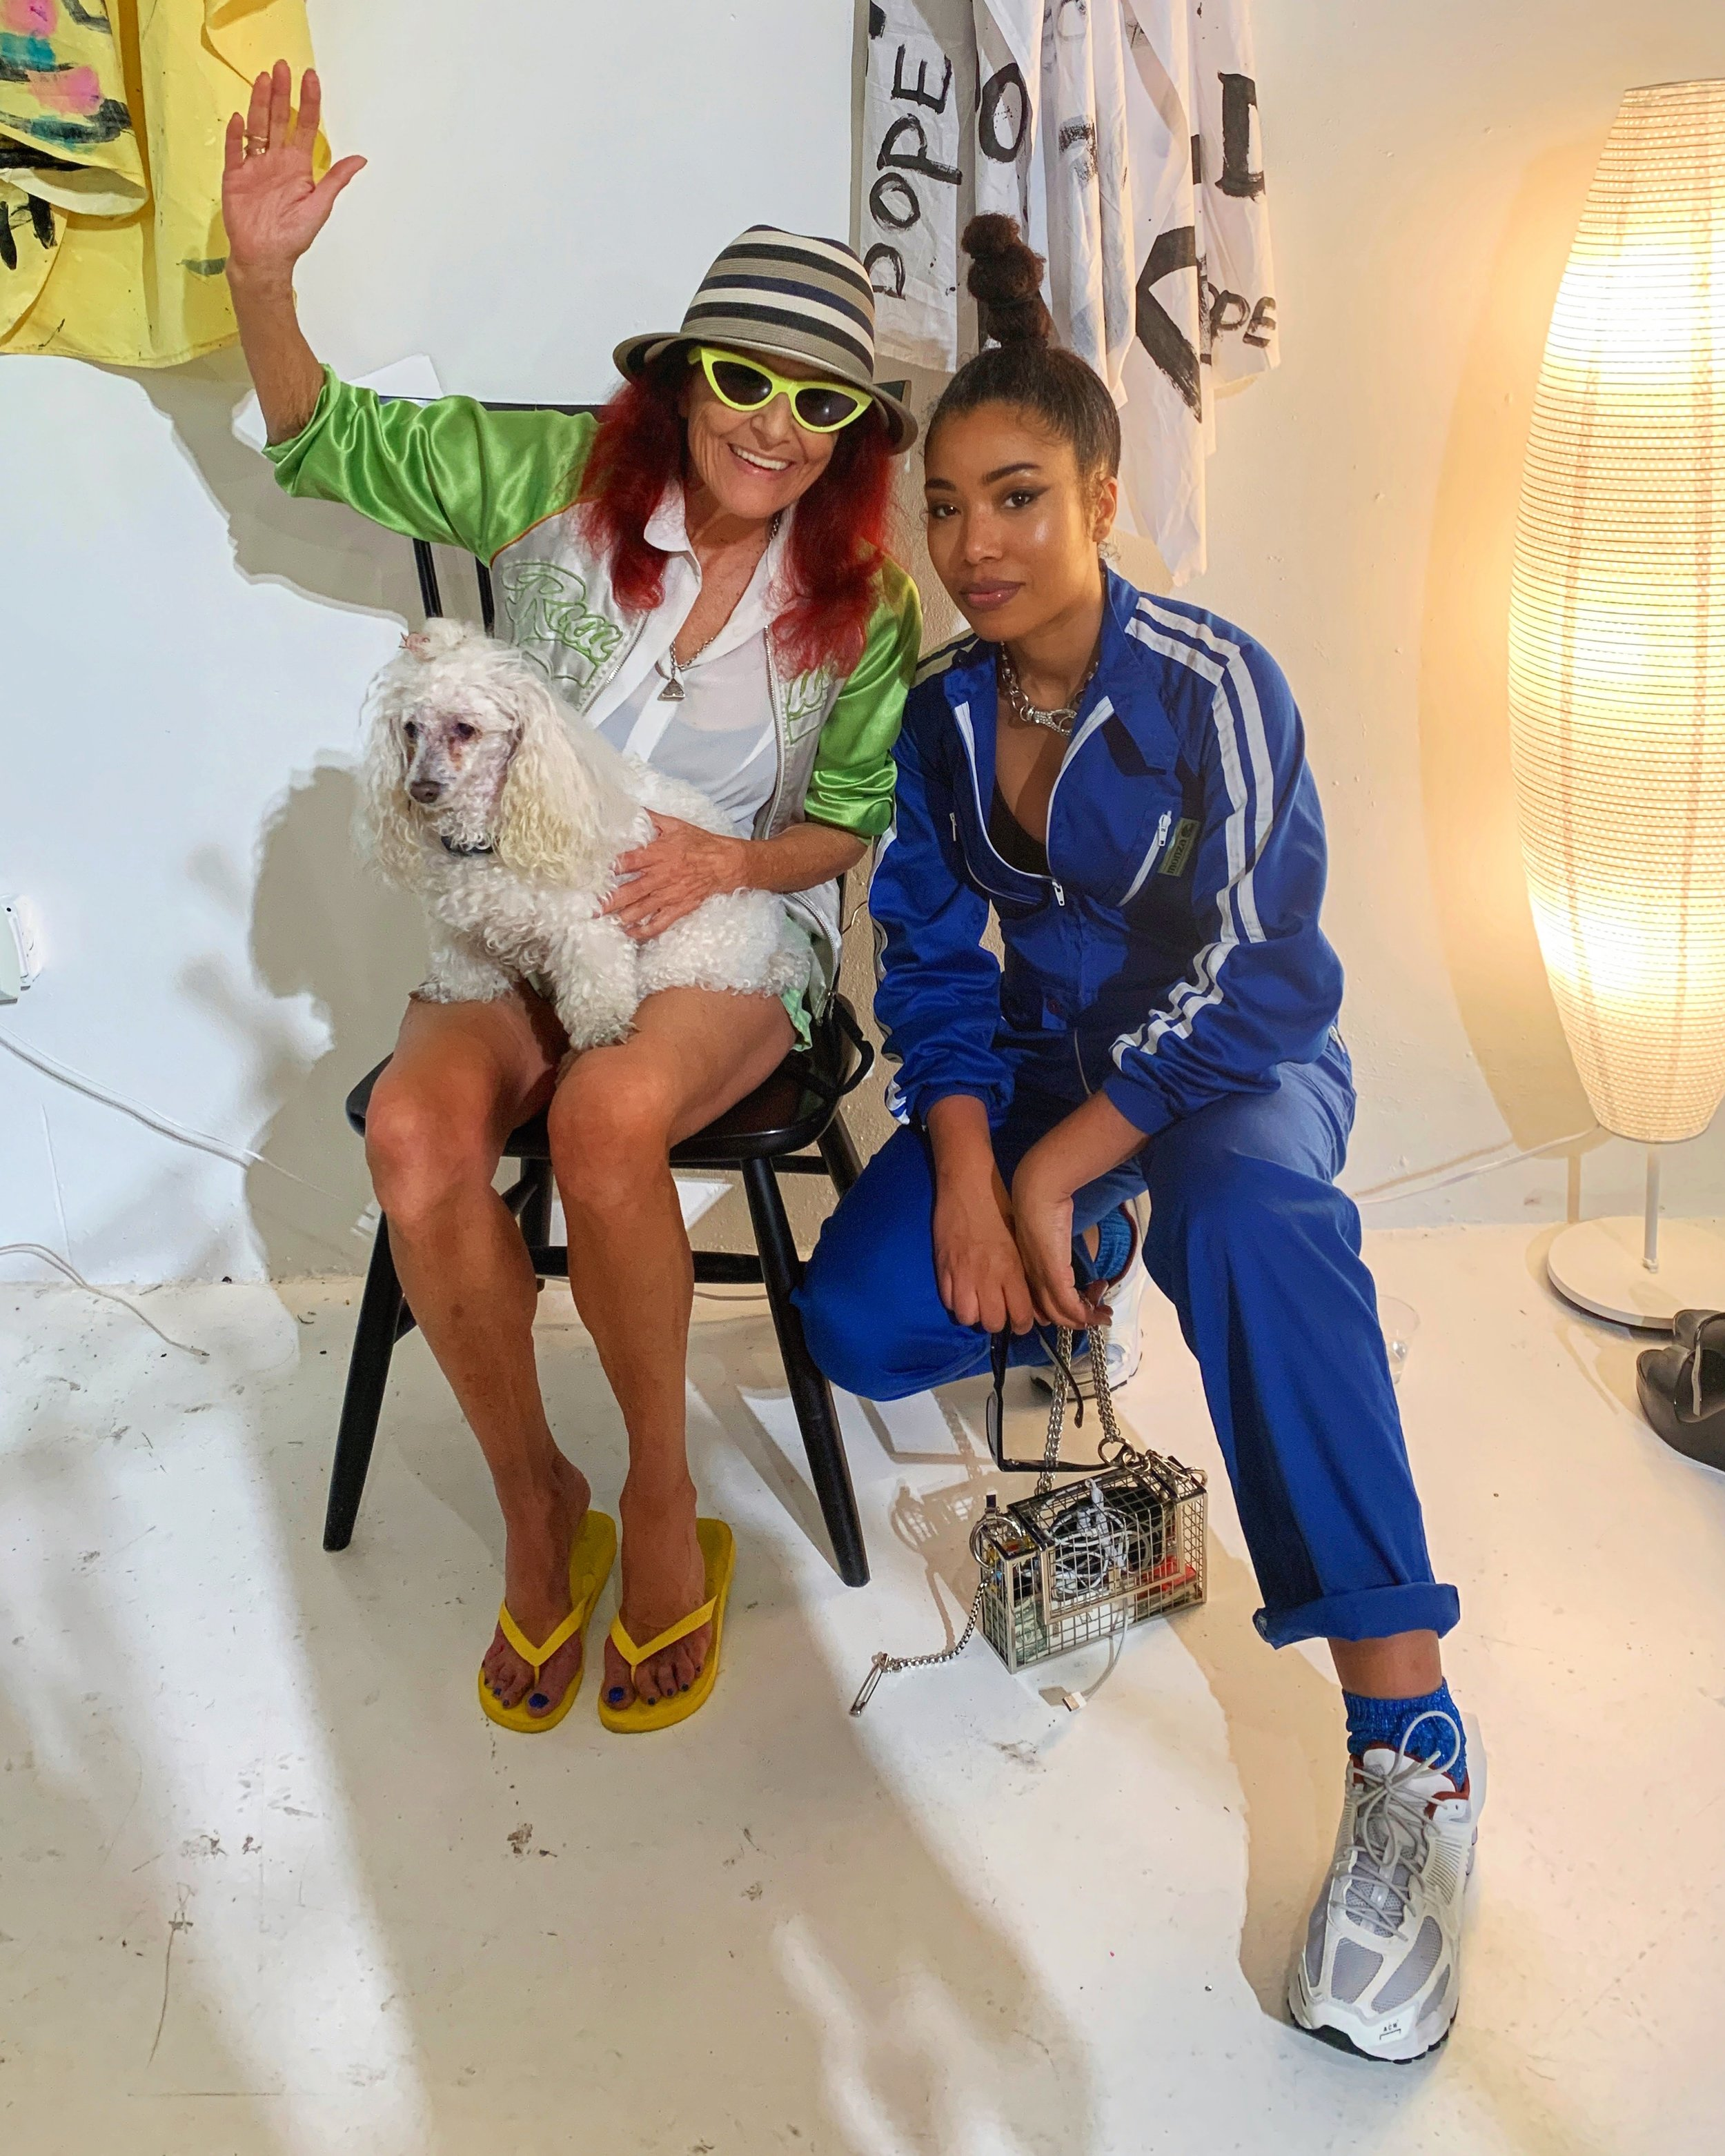 To top it off – ran into designer Patricia Field at the debut of her new collection!